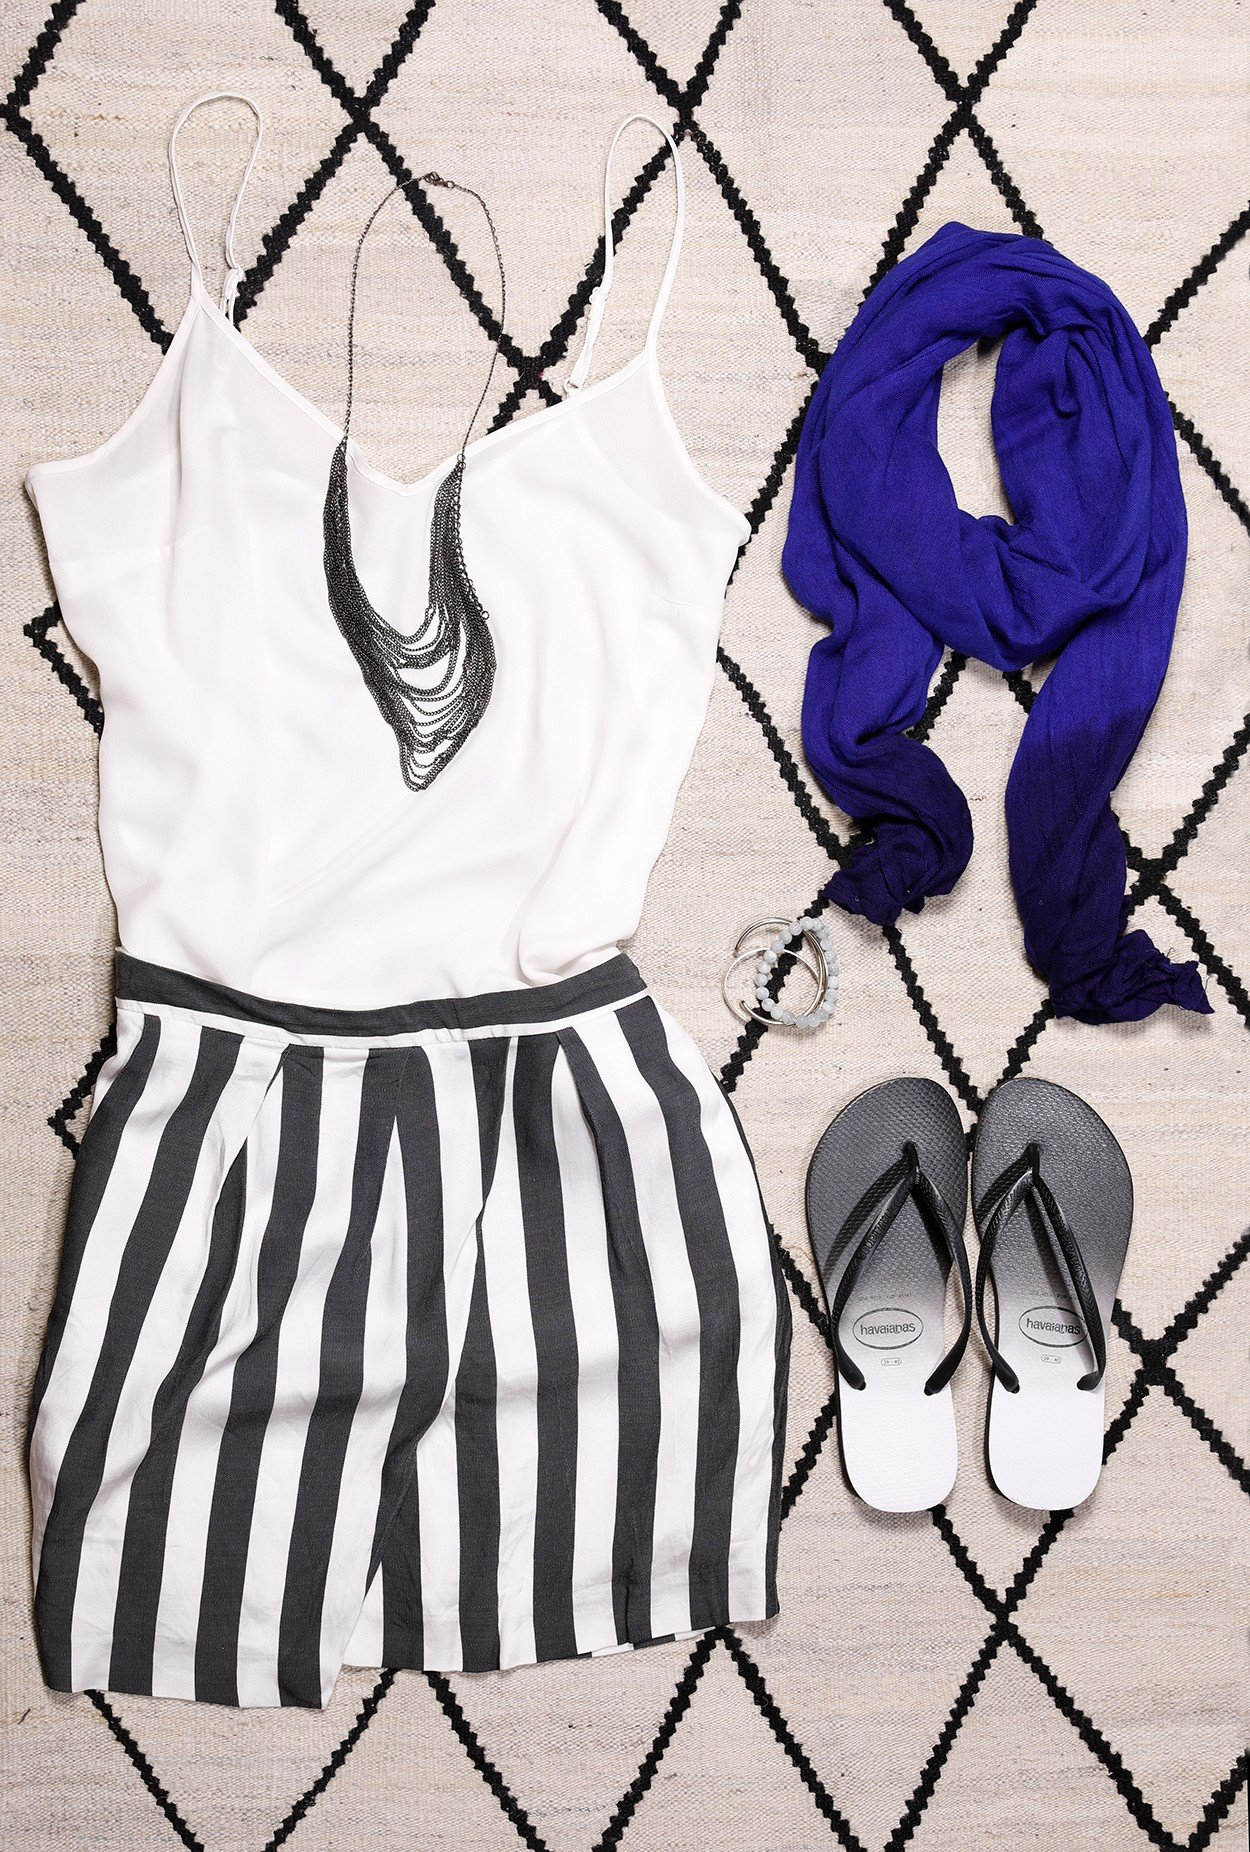 Territorio Havaianas Blog - Trends Outfits